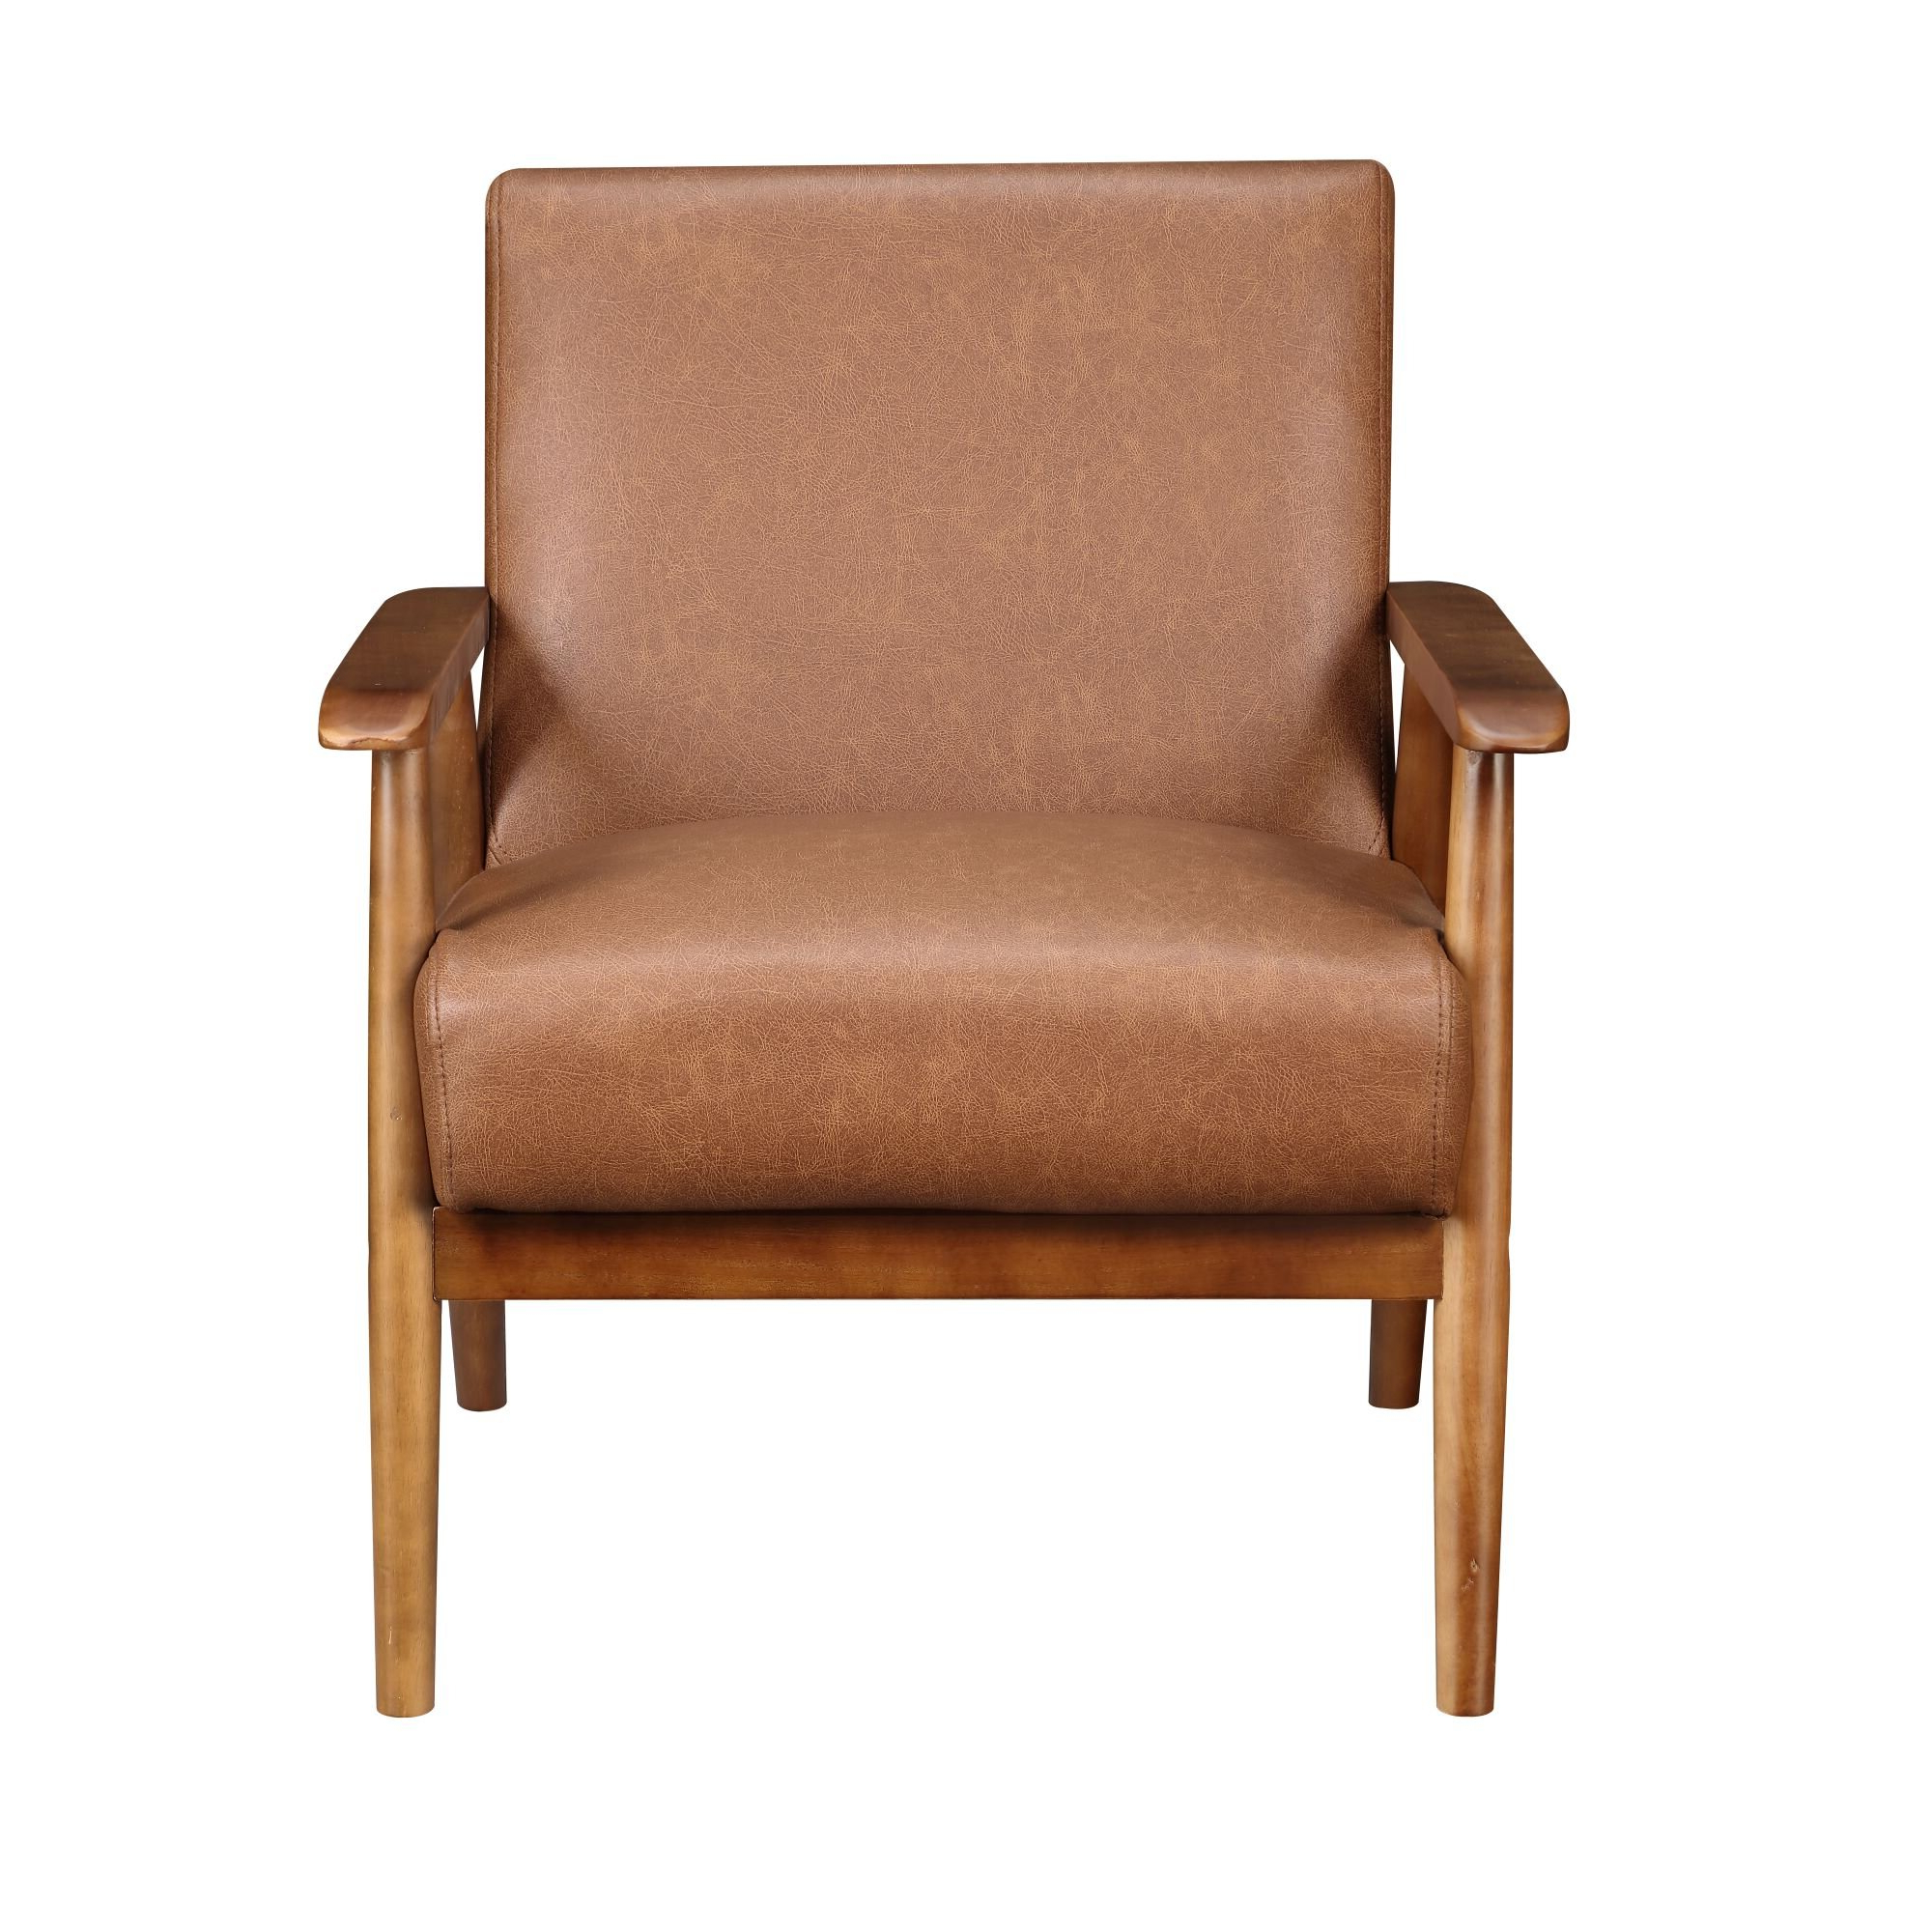 [%accent Chairs | Up To 60% Off Through 01/19 | Wayfair Pertaining To Trendy Broadus Genuine Leather Suede Side Chairs|broadus Genuine Leather Suede Side Chairs Regarding Most Recently Released Accent Chairs | Up To 60% Off Through 01/19 | Wayfair|most Up To Date Broadus Genuine Leather Suede Side Chairs With Accent Chairs | Up To 60% Off Through 01/19 | Wayfair|most Up To Date Accent Chairs | Up To 60% Off Through 01/19 | Wayfair Regarding Broadus Genuine Leather Suede Side Chairs%] (View 13 of 20)